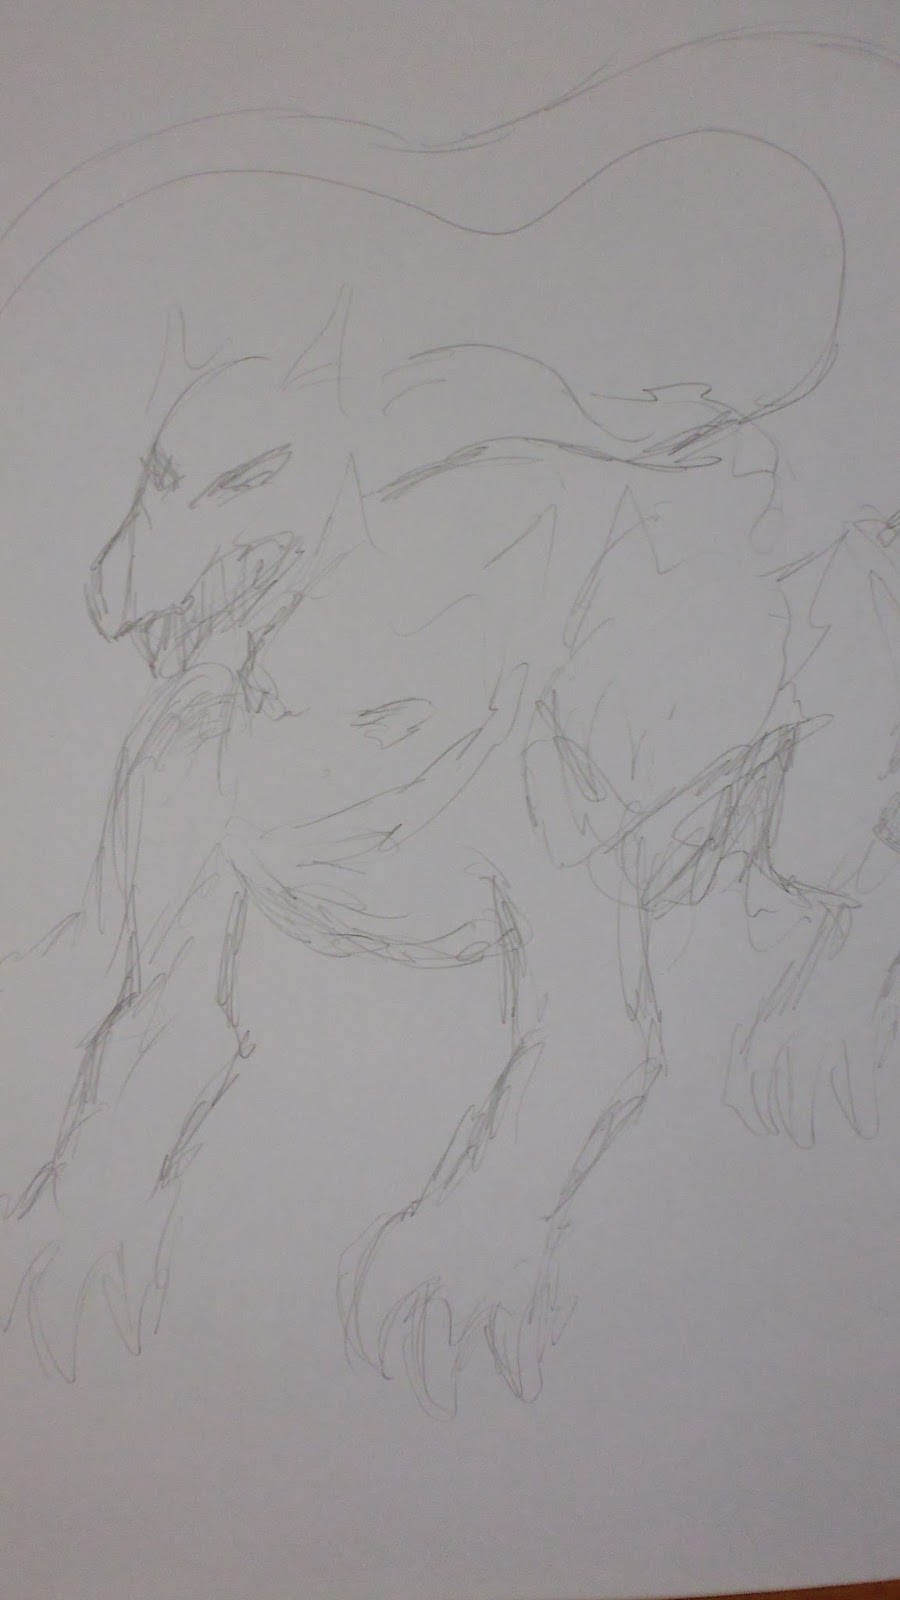 gesture drawing cerberus